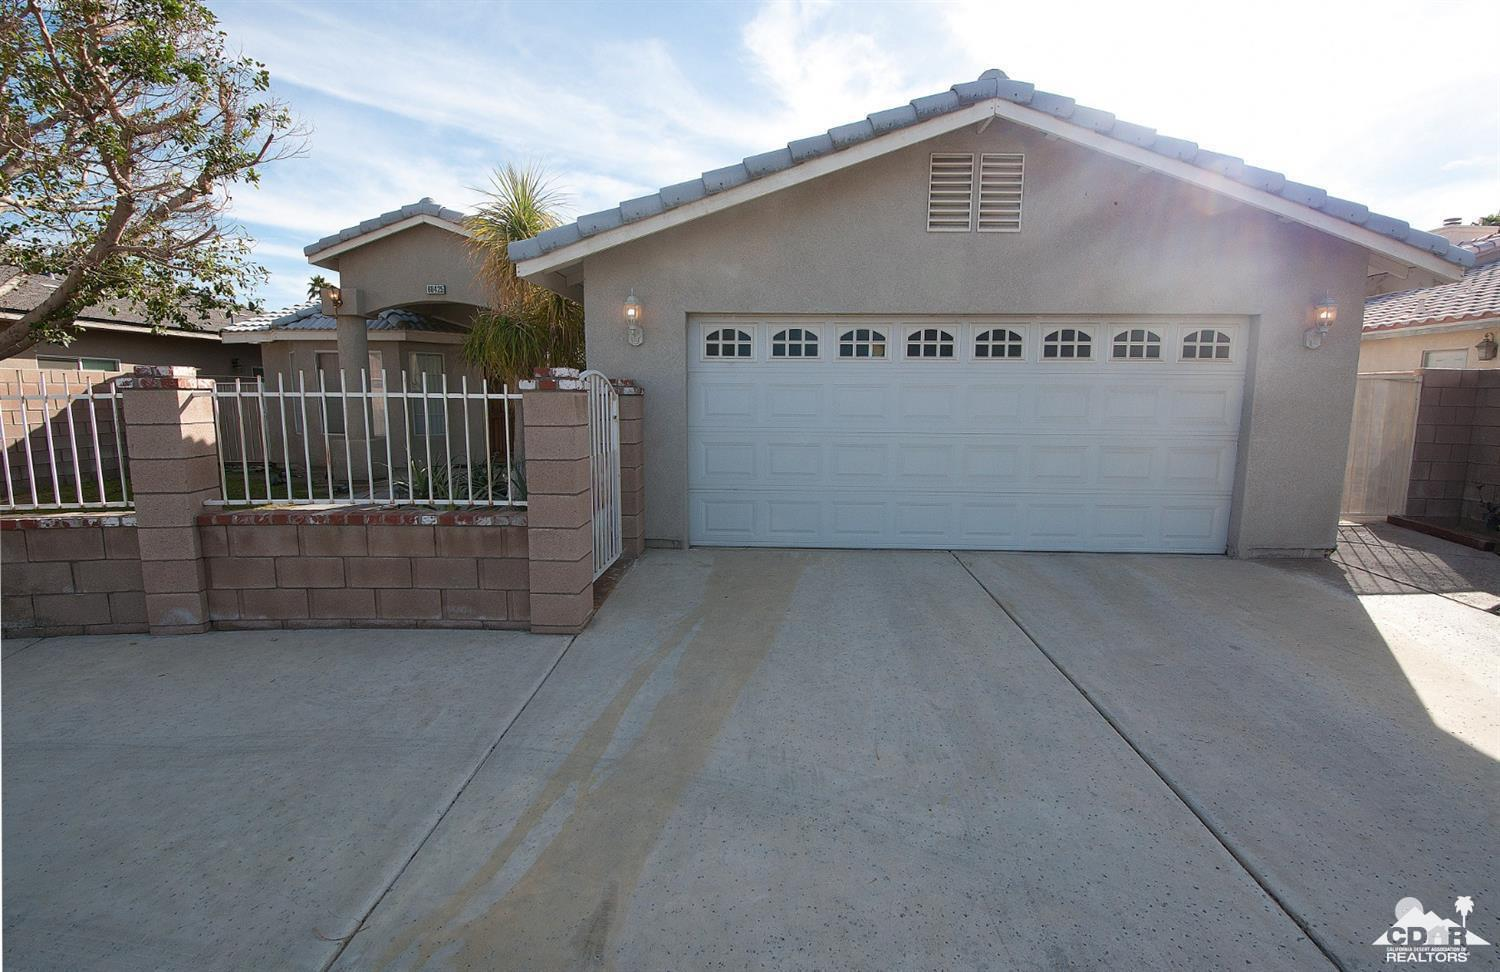 Come look at this spacious and perfect home for entertaining! Ample living room, and family room. Open Kitchen offers plenty of storage complete with breakfast bar that connects to the dining room. Pool size backyard and beautiful views of the desert mountains. 3 great rooms, and 2 baths and its own laundry room. Two car finished garage, and up to 4 car drive way. Move in ready! Located in Central Cathedral City close th Schools, shopping, and I-10 freeway!